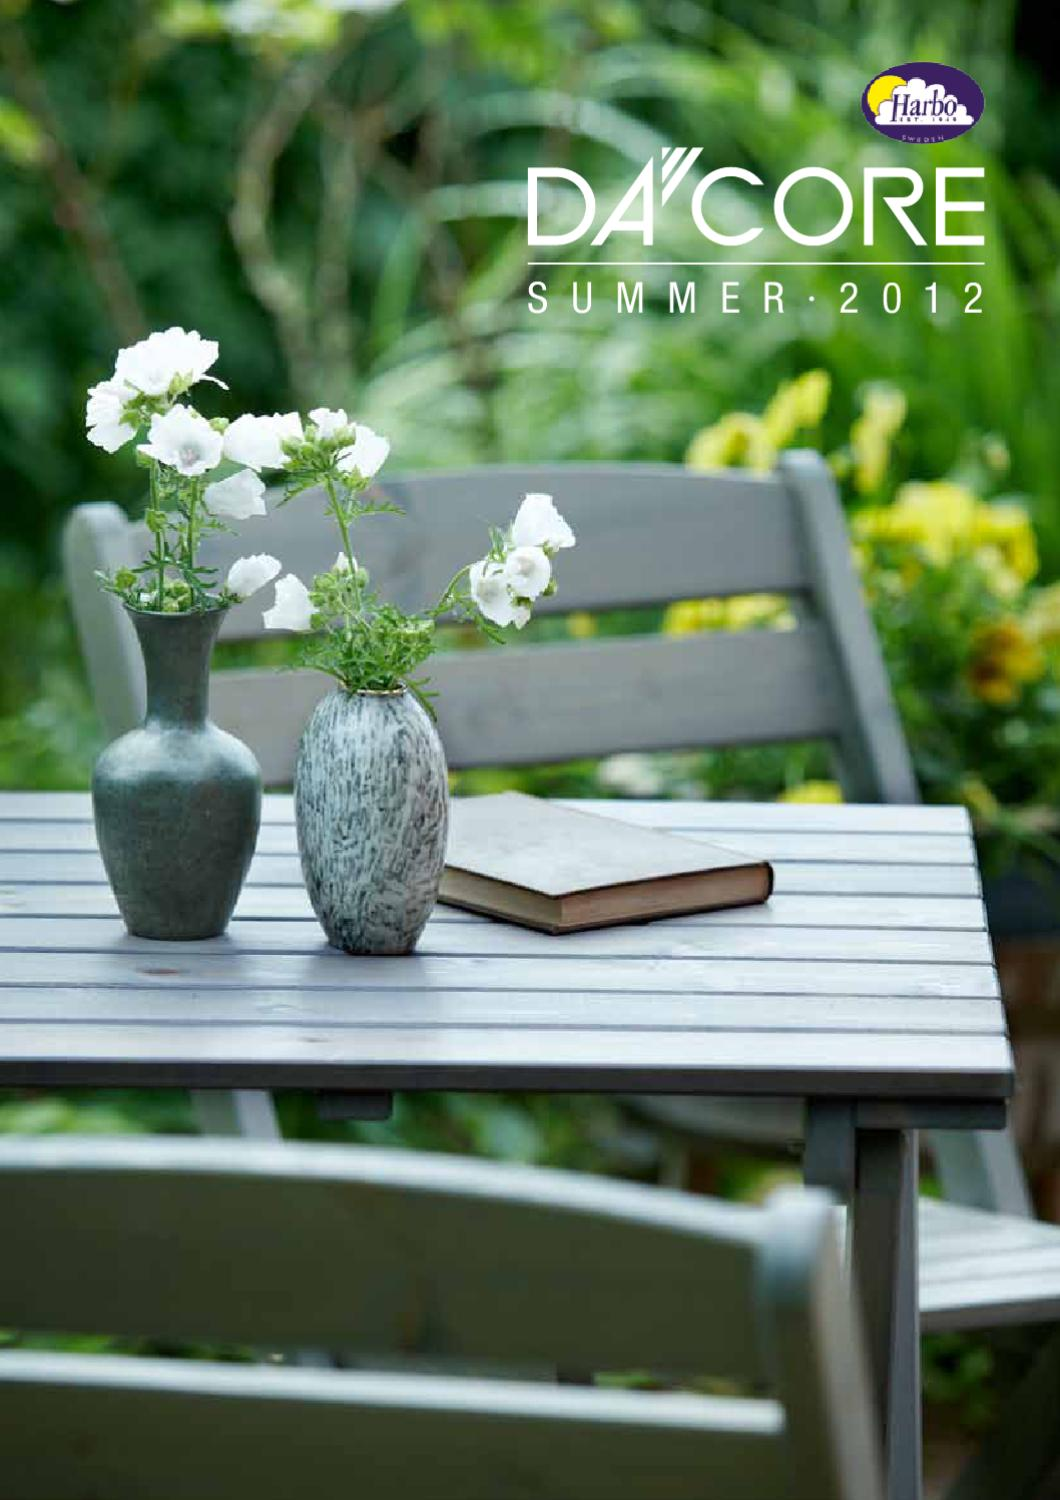 Dacore Harbo Garden Furniture Outdoor Catalog 2012 By Lakbermagazin Issuu